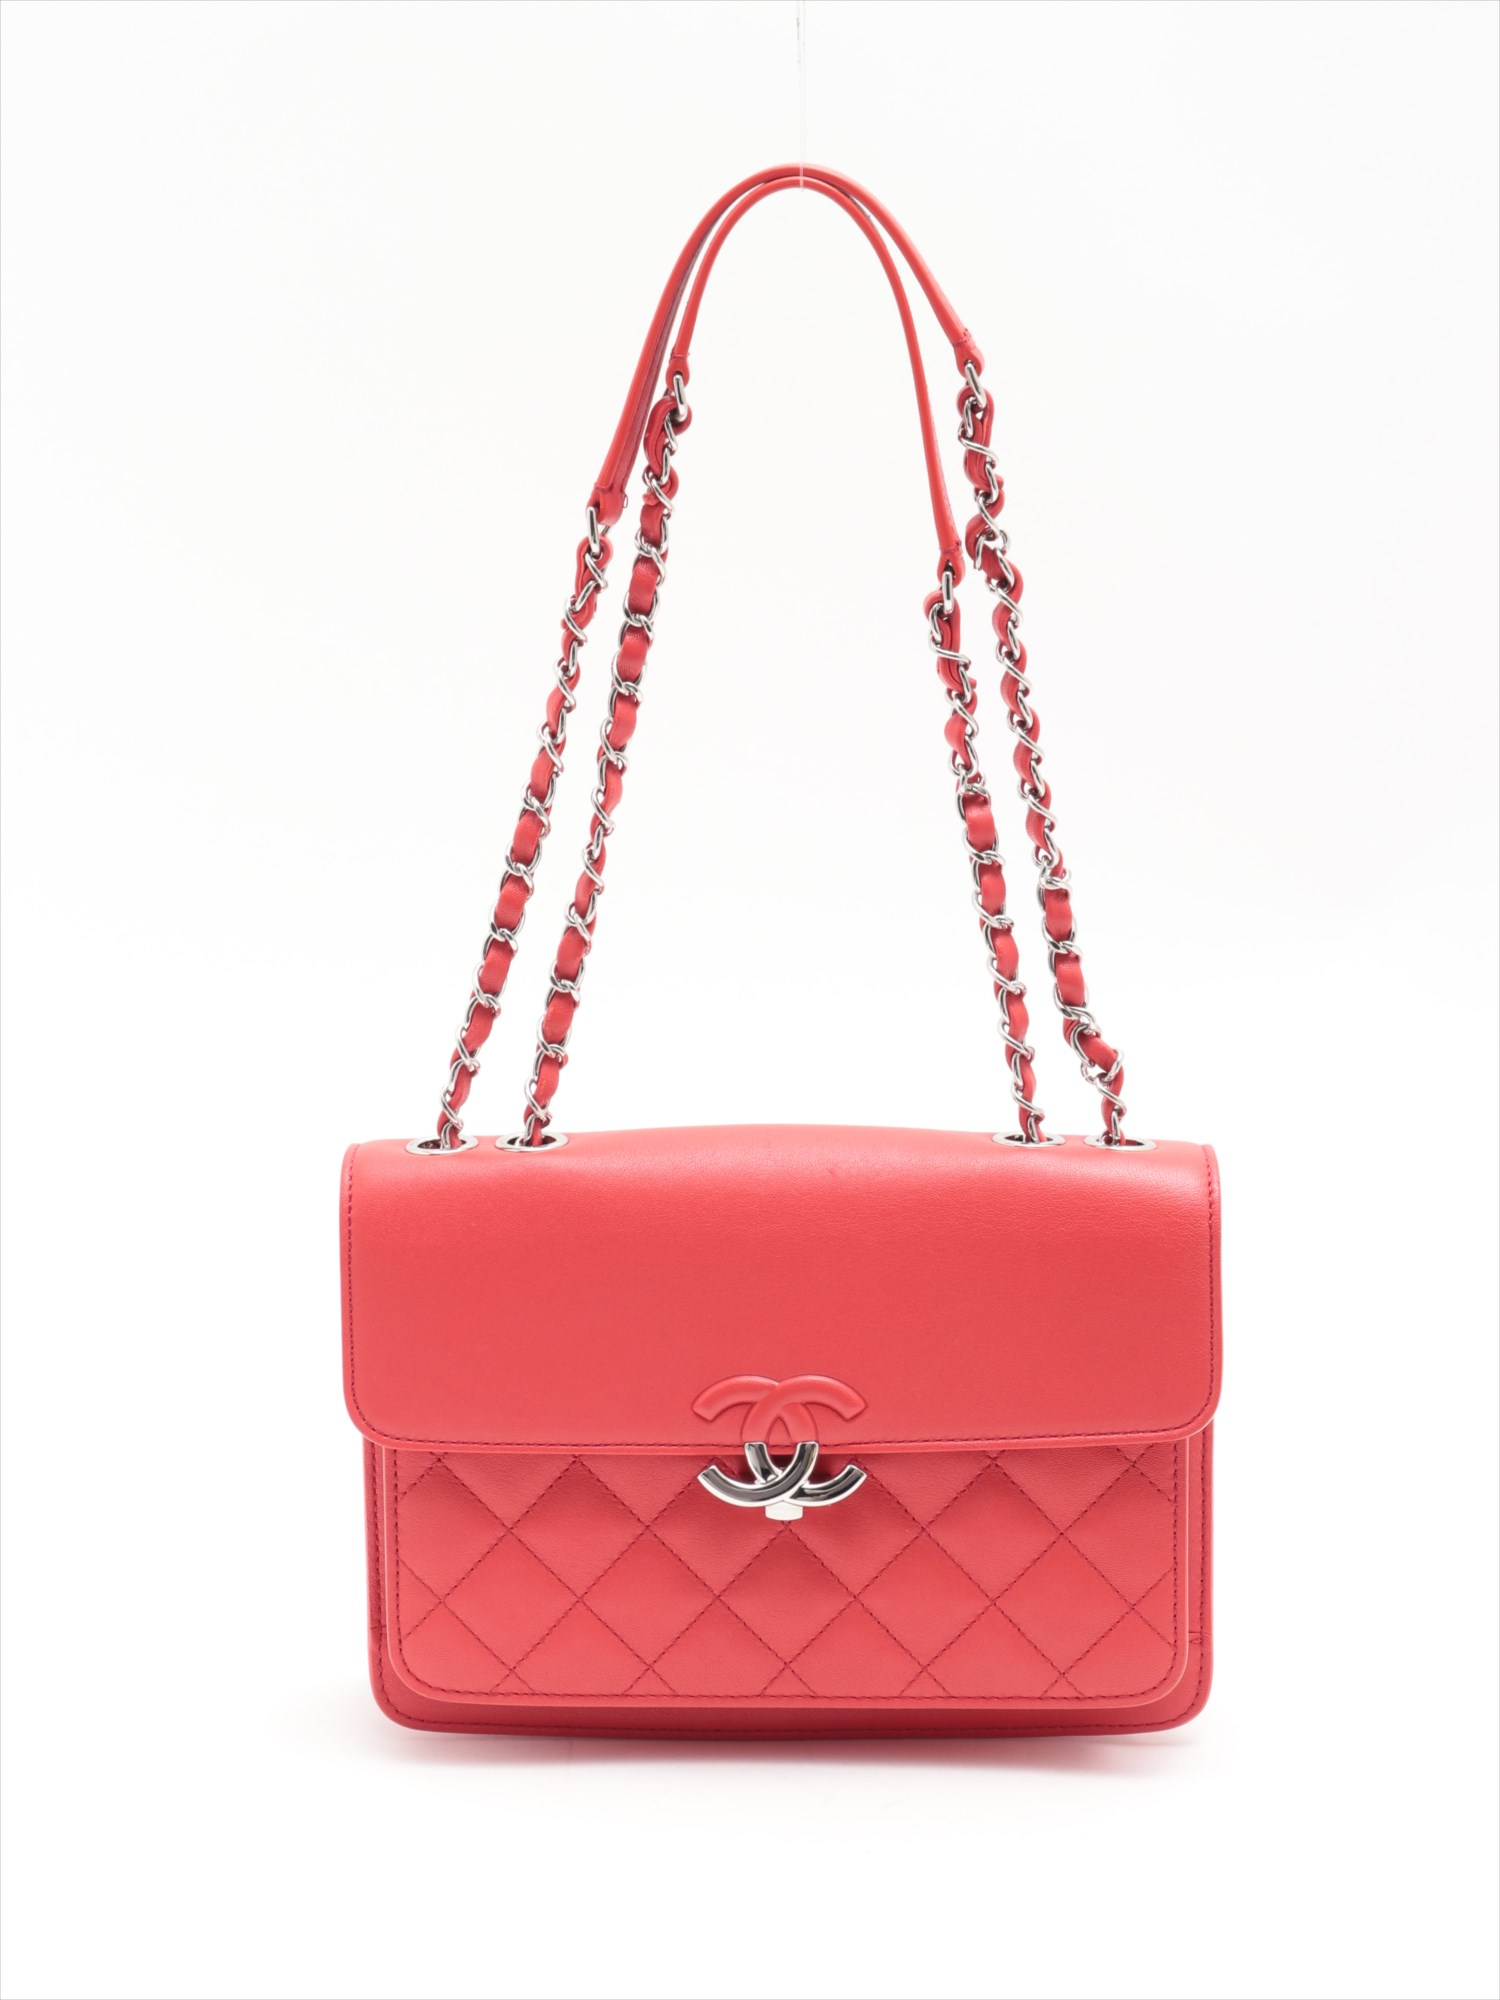 [Used goods] Chanel Matorasse leather single flap double chain bag Red Silver hardware 25 series